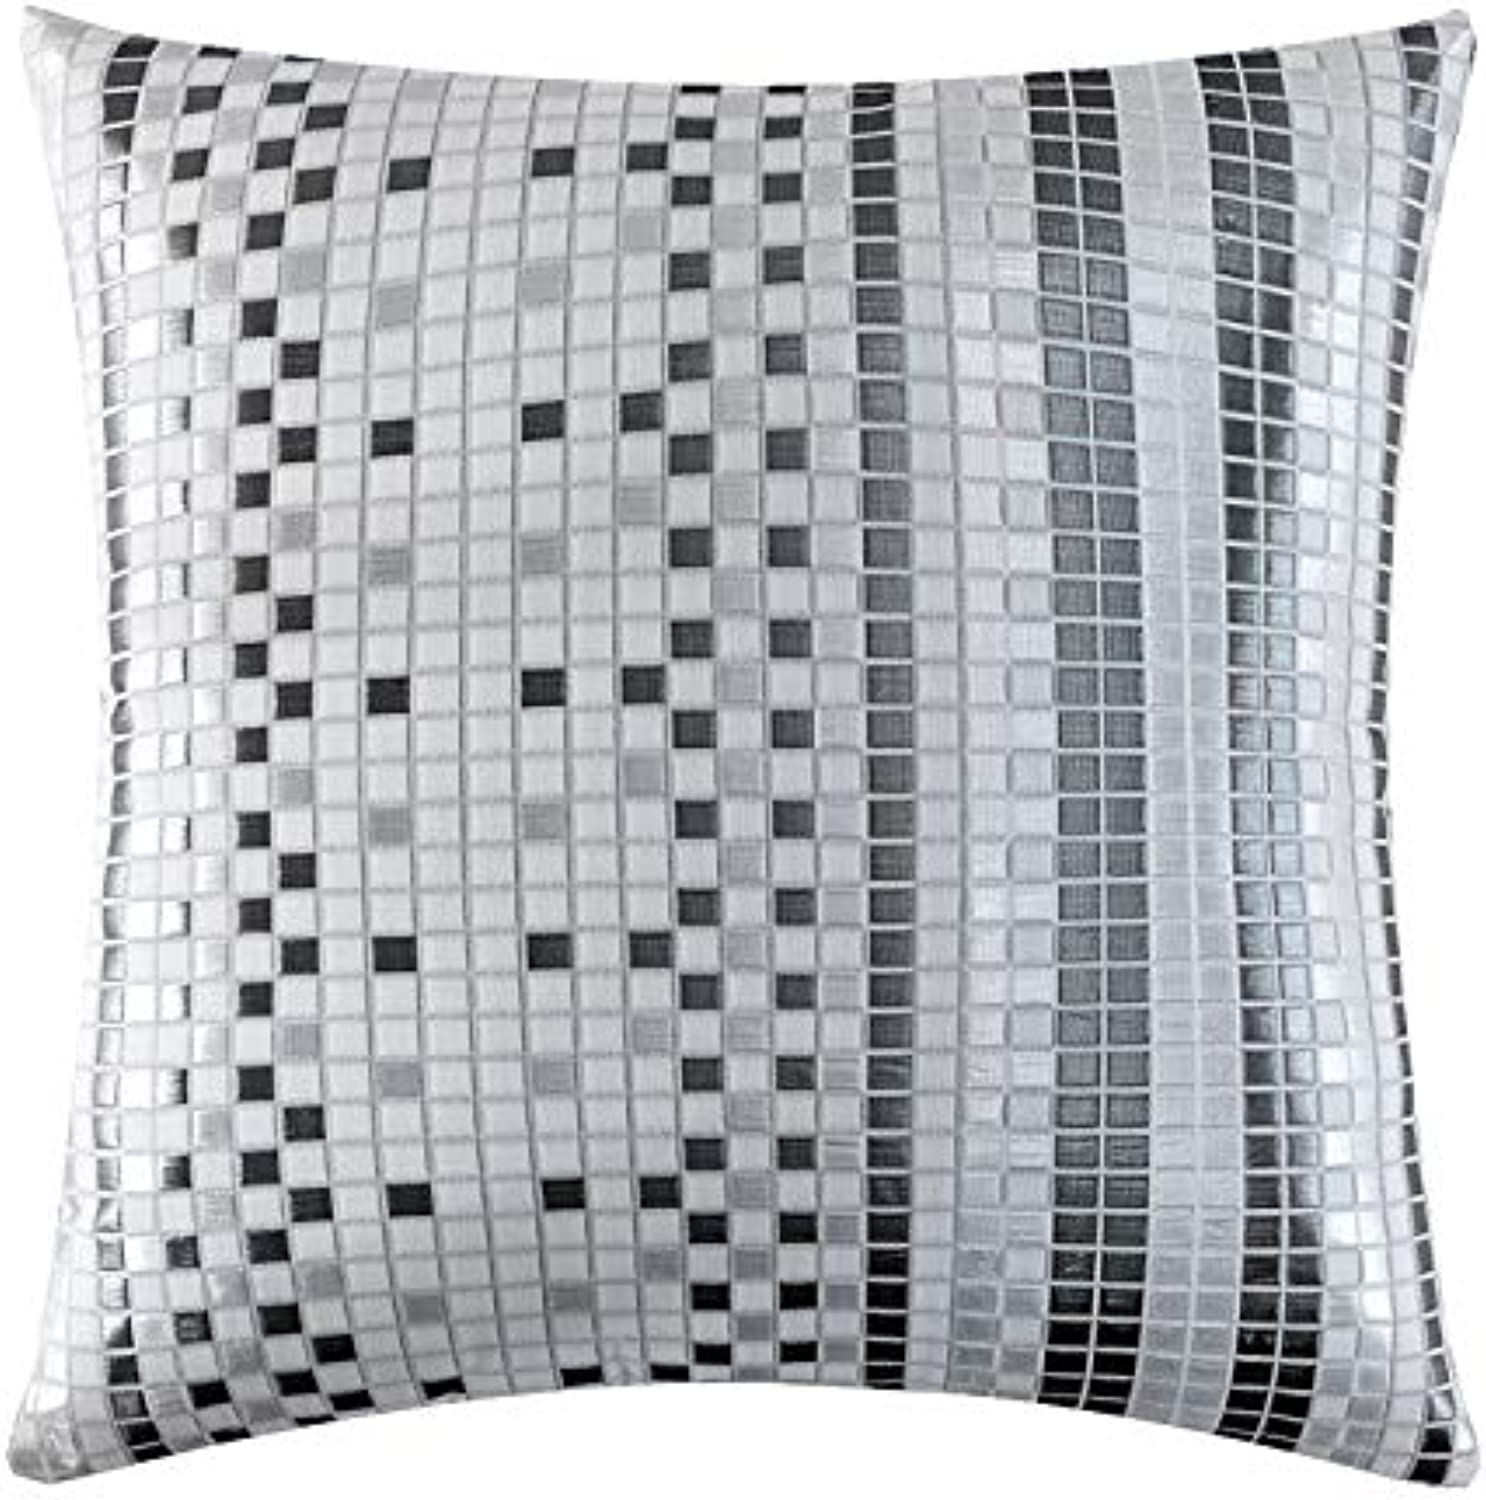 LLIND Home Metallic Mosaic Jacquard Pillow Sofa Pillow Simple Home (Size   45x45cm)